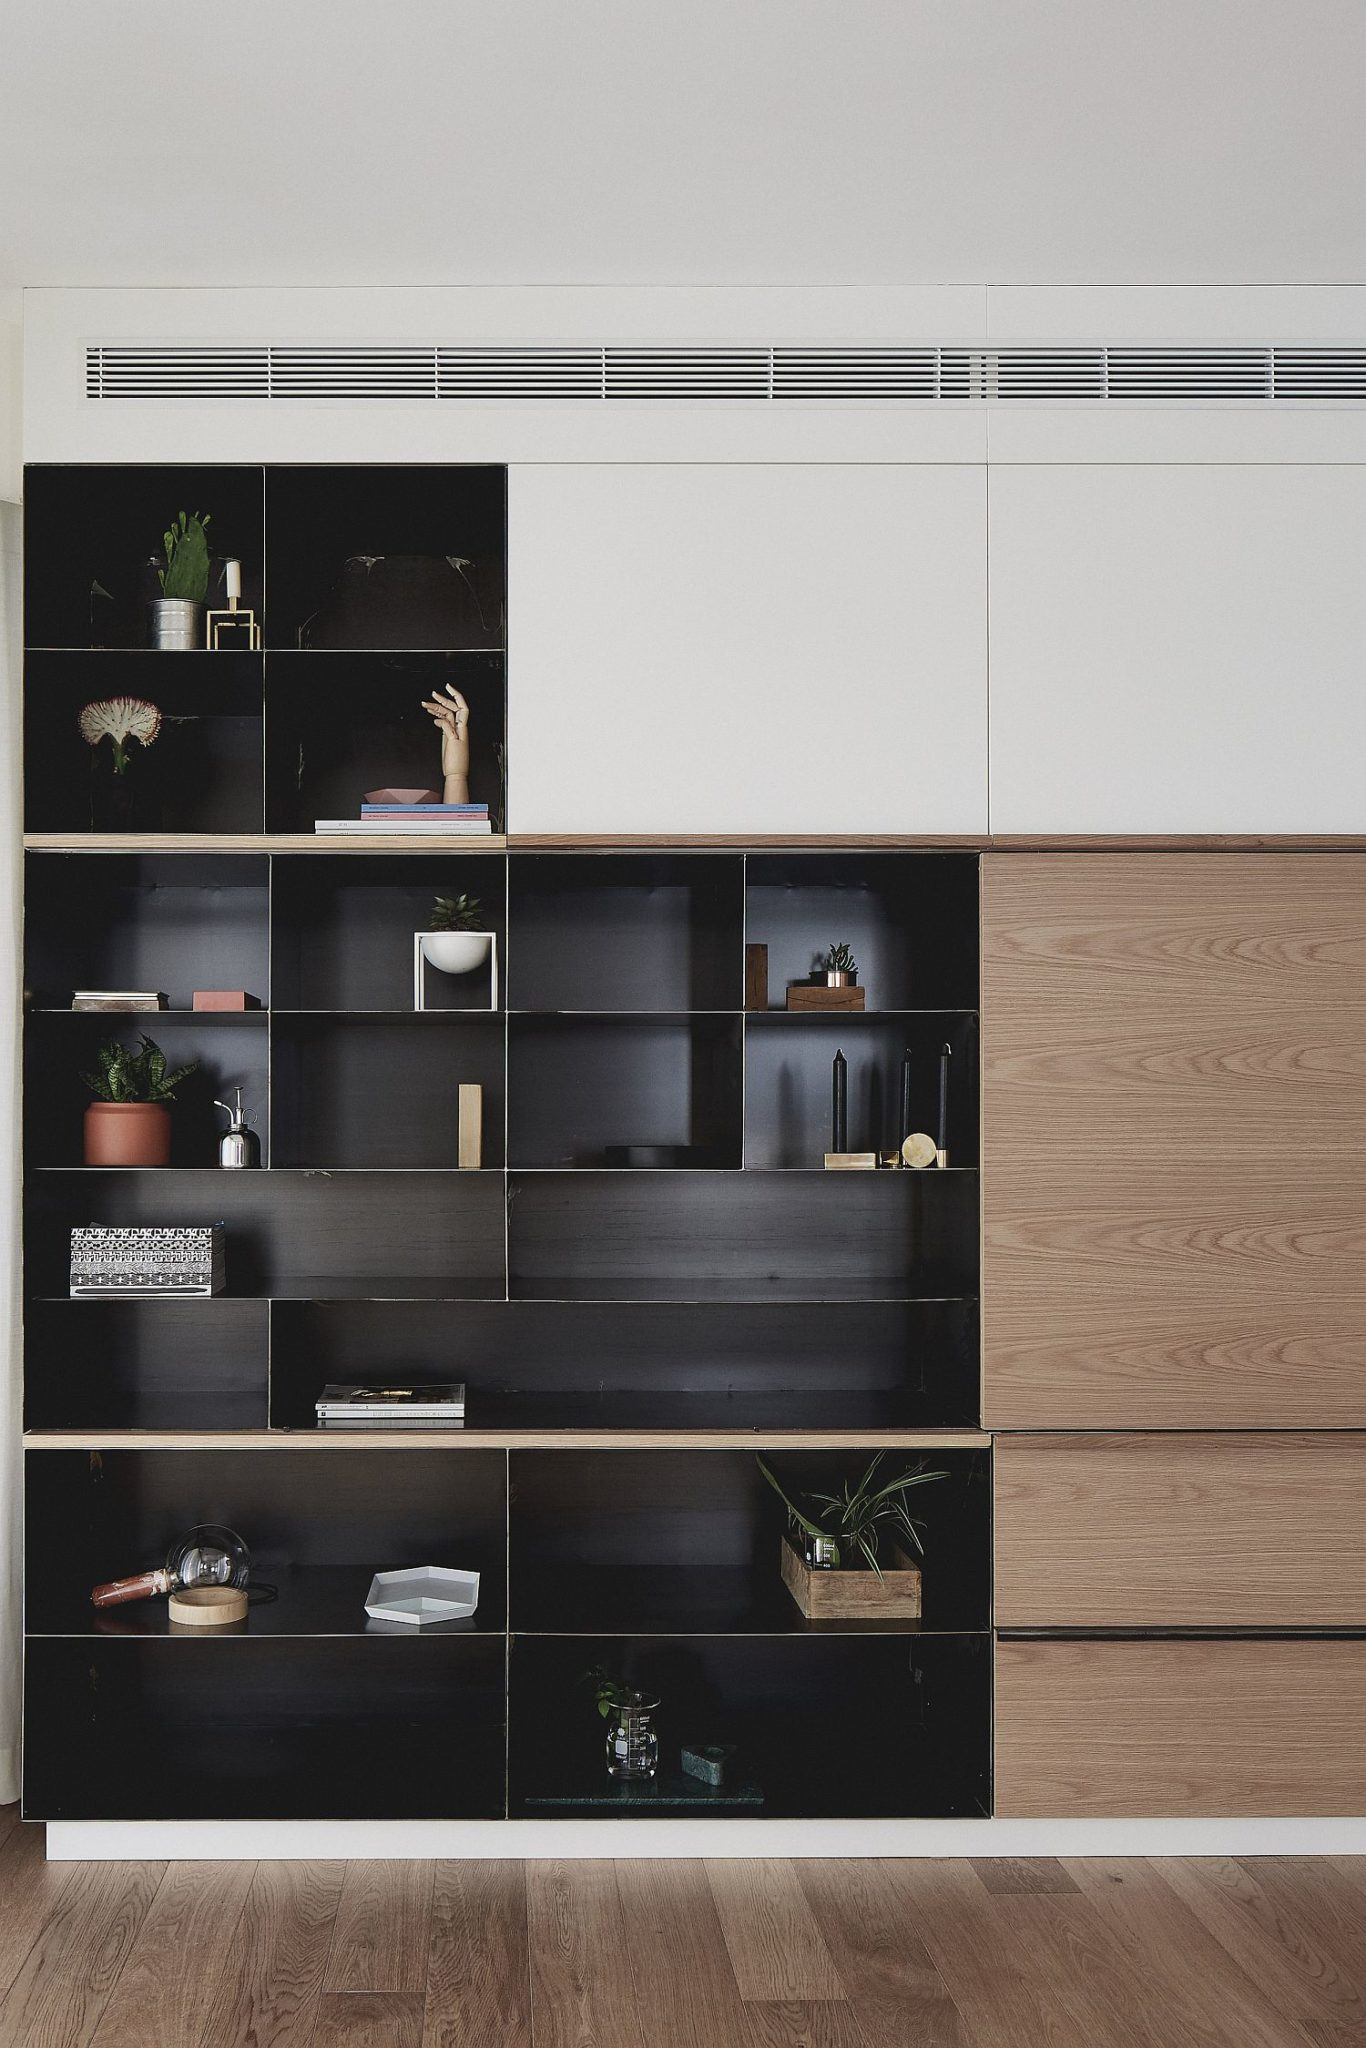 Dark-metallic-cabinet-stands-out-visually-when-placed-next-to-the-white-backdrop